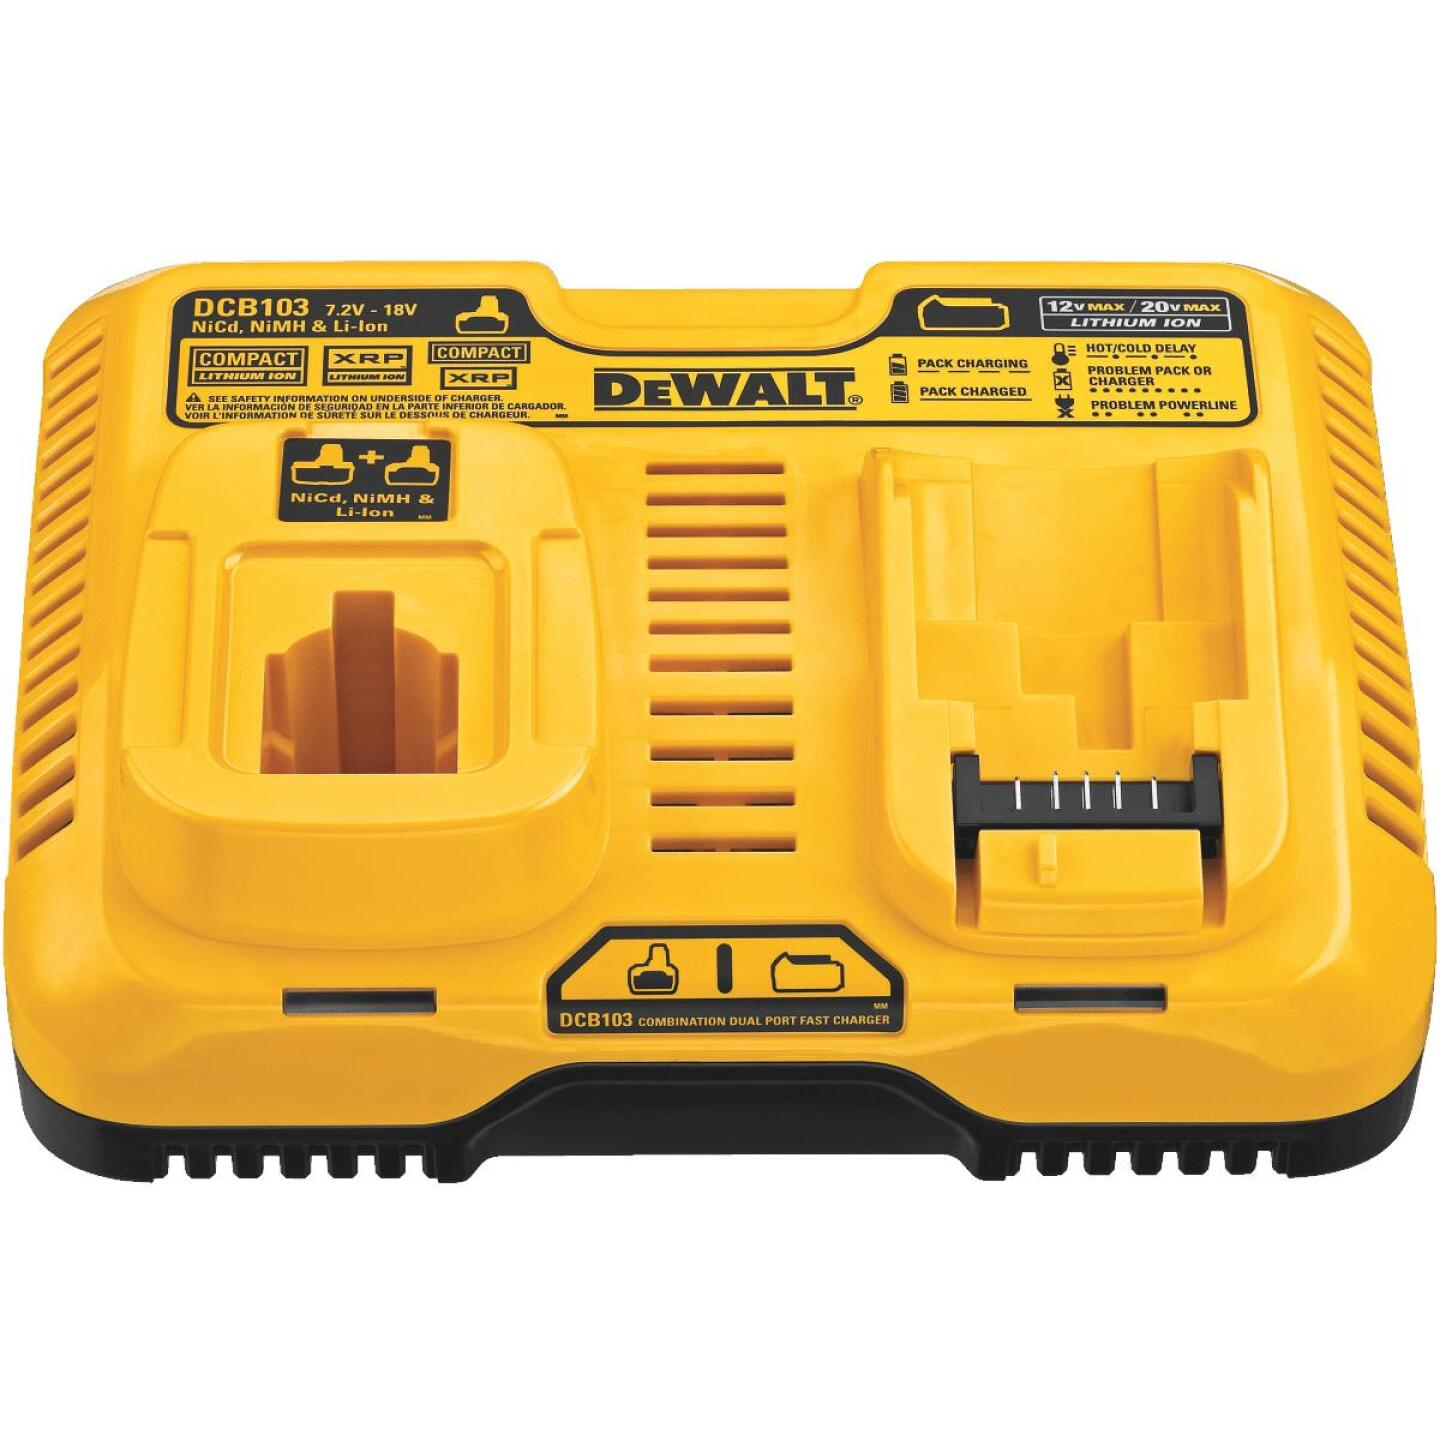 DeWalt 7.2 Volt to 20 Volt MAX Nickel-Cadmium/Nickel-Metal Hydride/Lithium-Ion Dual Port Fast Battery Charger Image 2